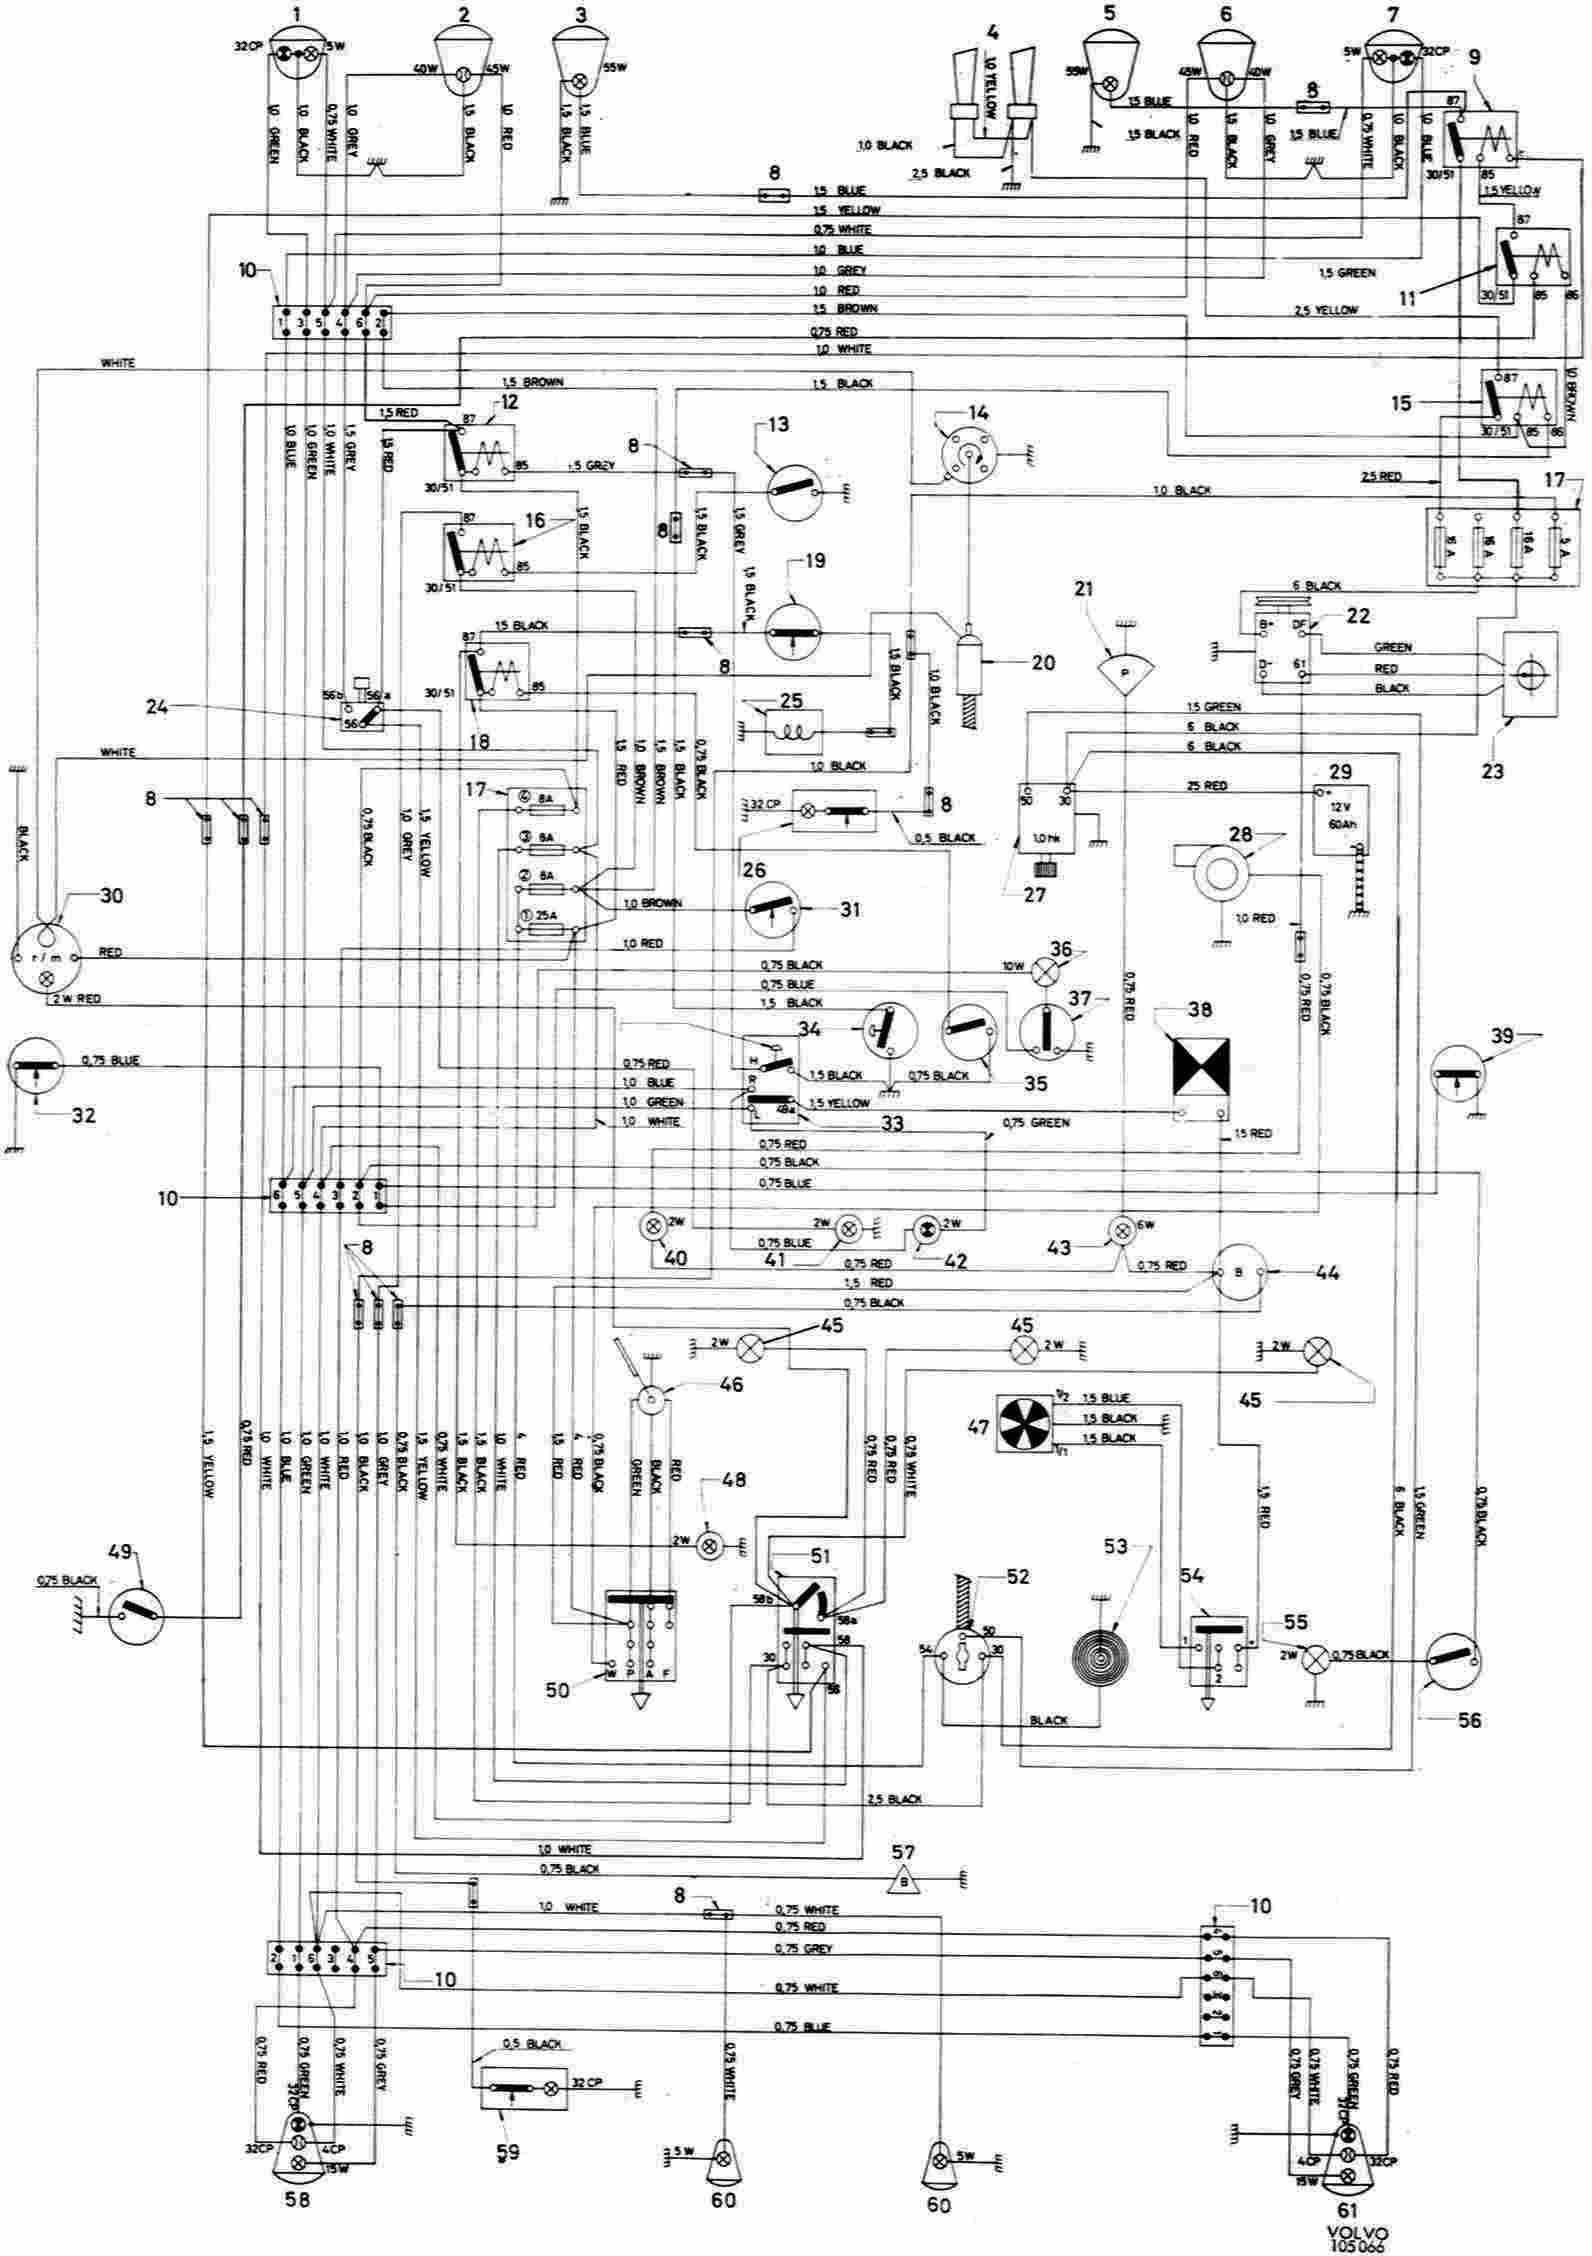 wiring diagram volvo 740 stereo example electrical wiring diagram u2022 rh olkha co Volvo V70 Electrical Diagram wiring diagram volvo truck